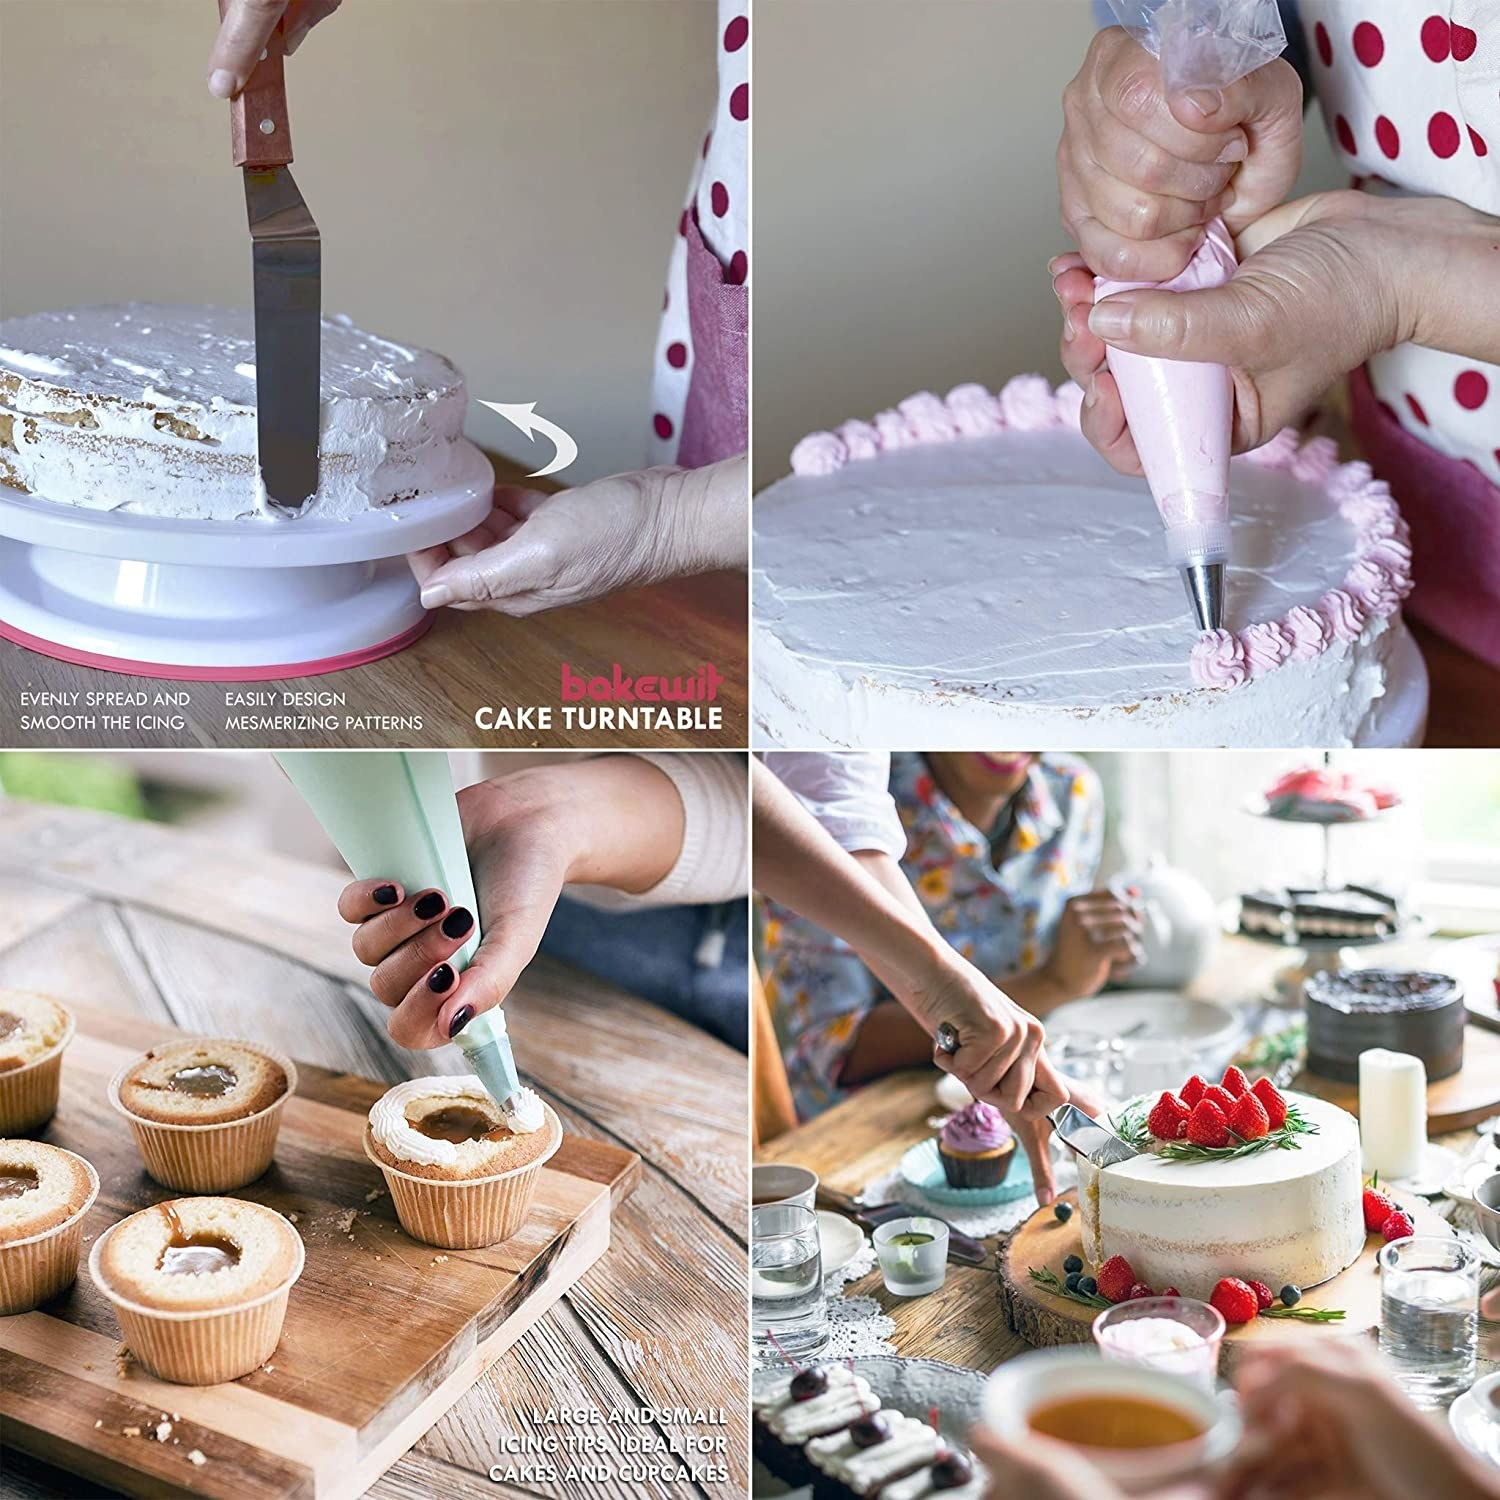 Models using the cake decorating tools to frost cakes